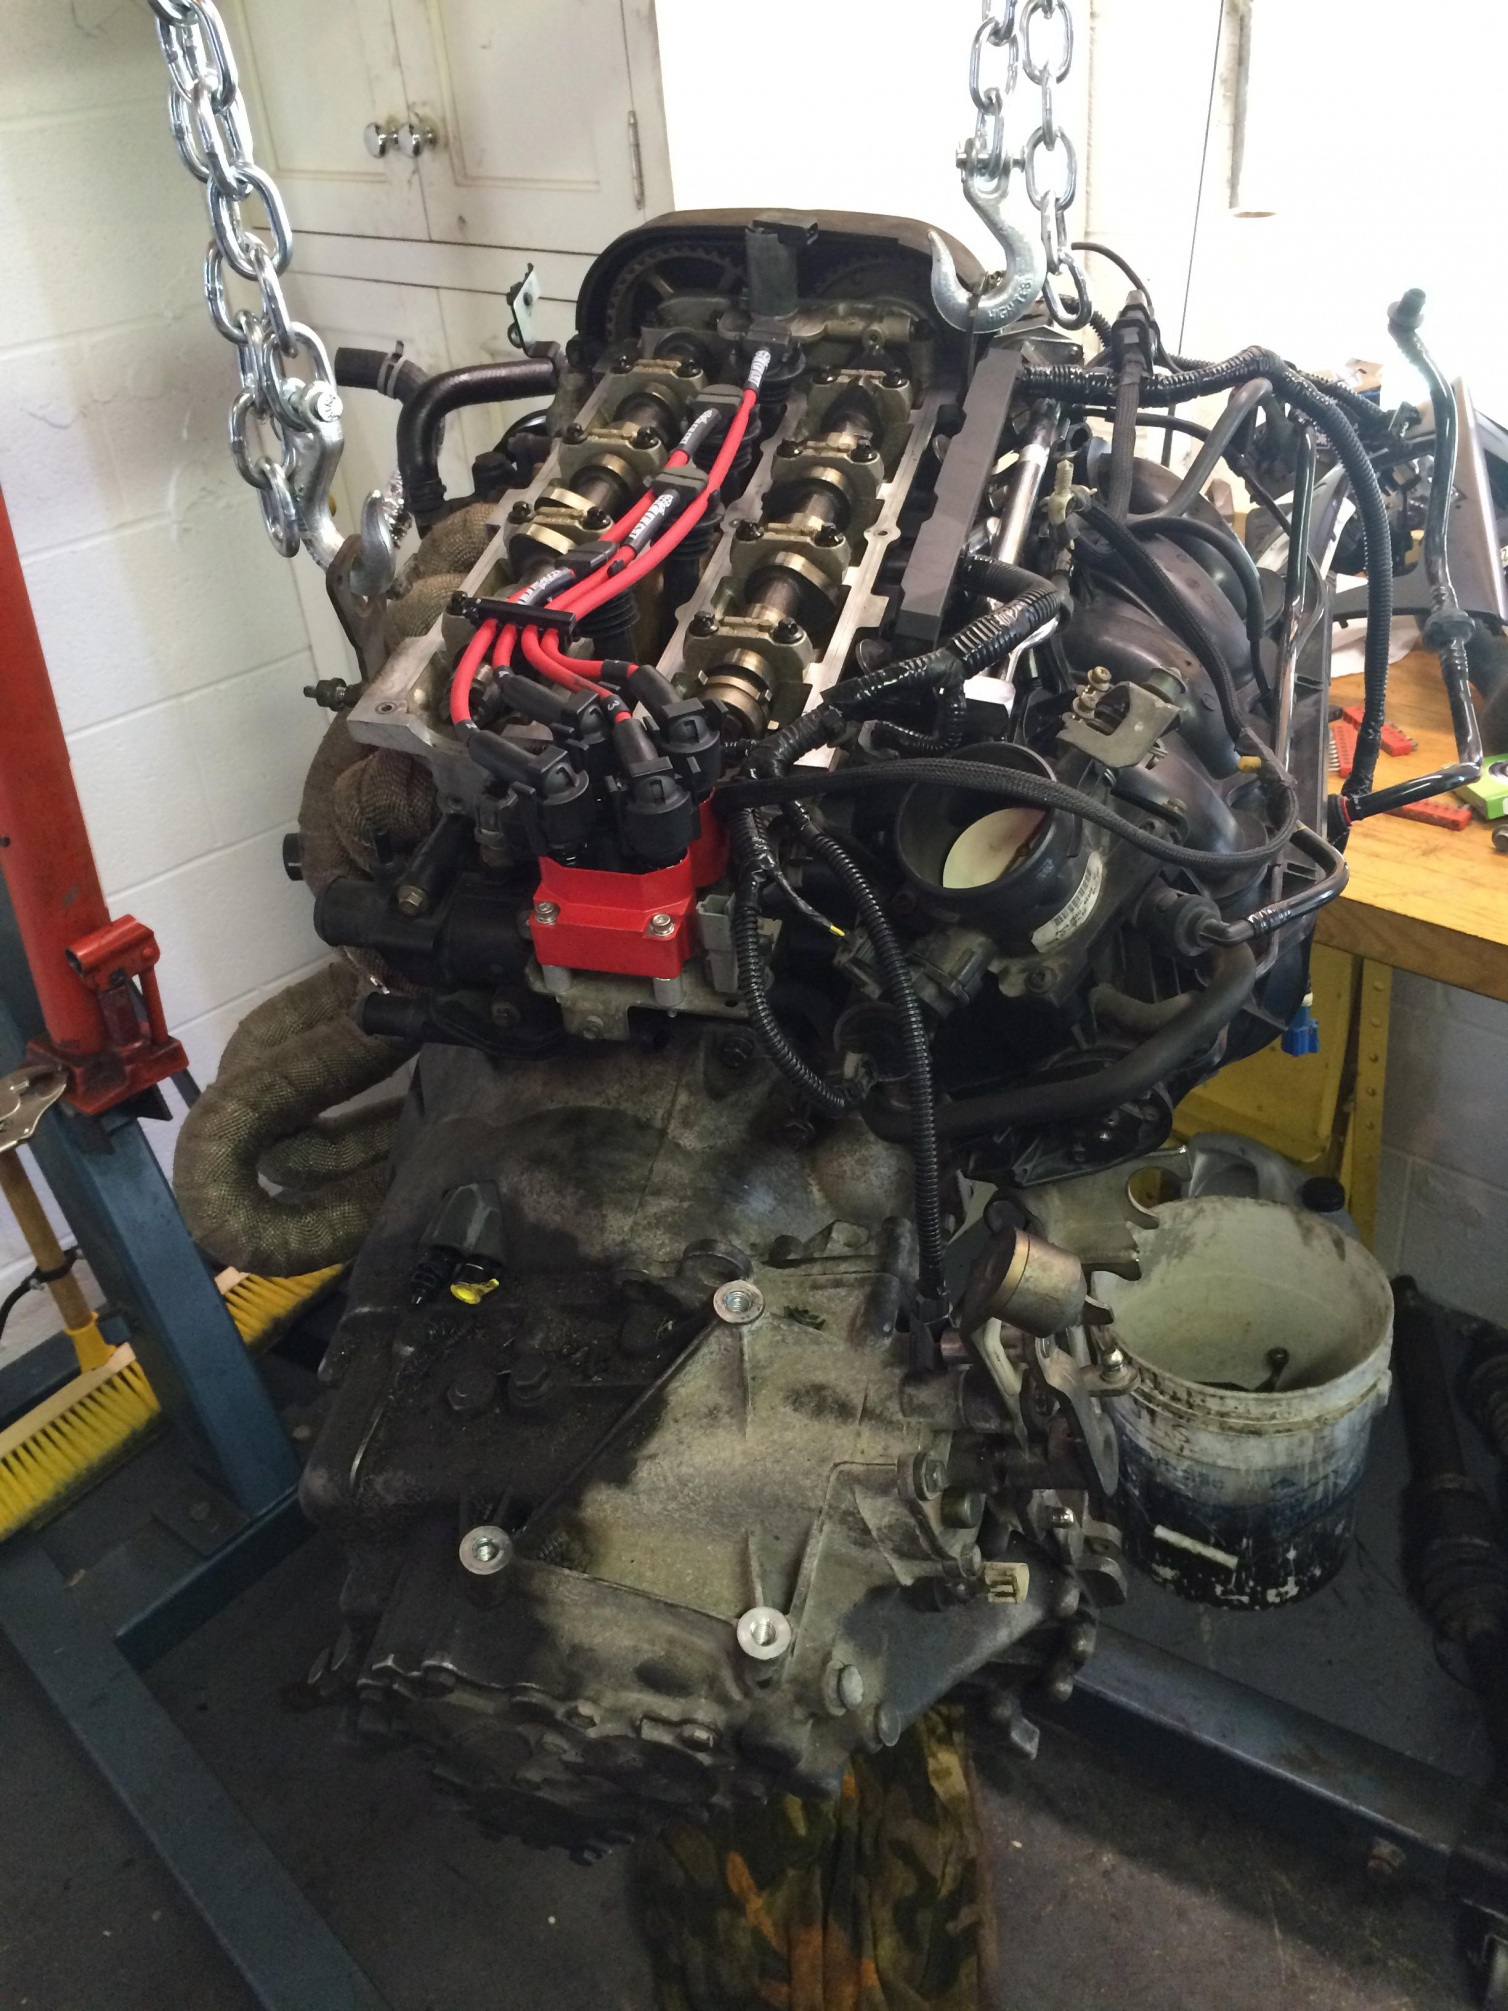 Svt rebuild and forced induction project-img_2518_1485951815234.jpg